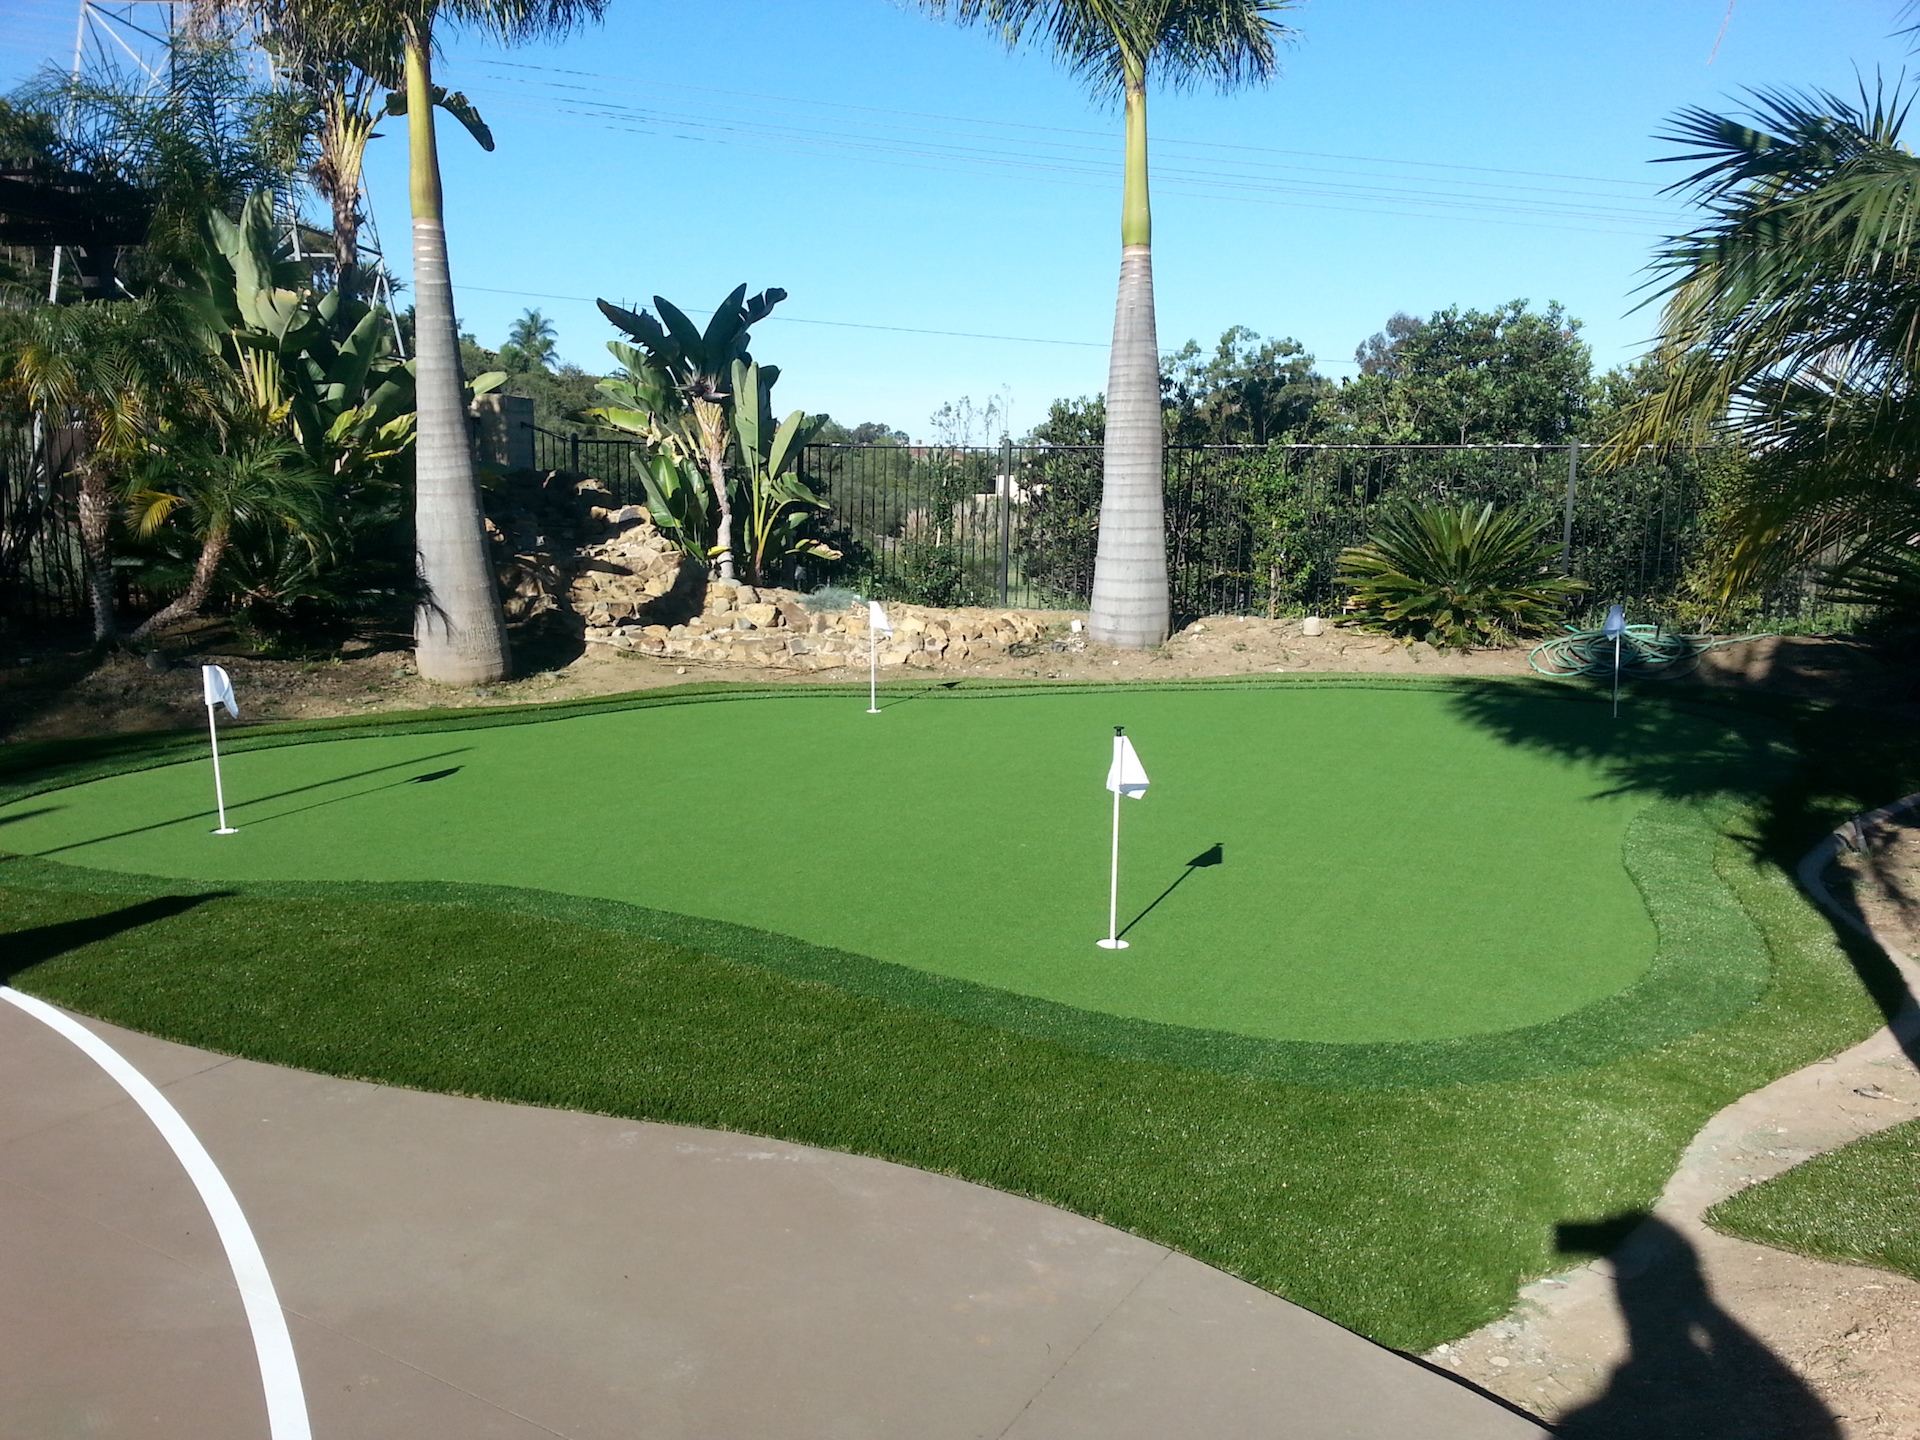 Backyard putting green installed by Install-It-Direct